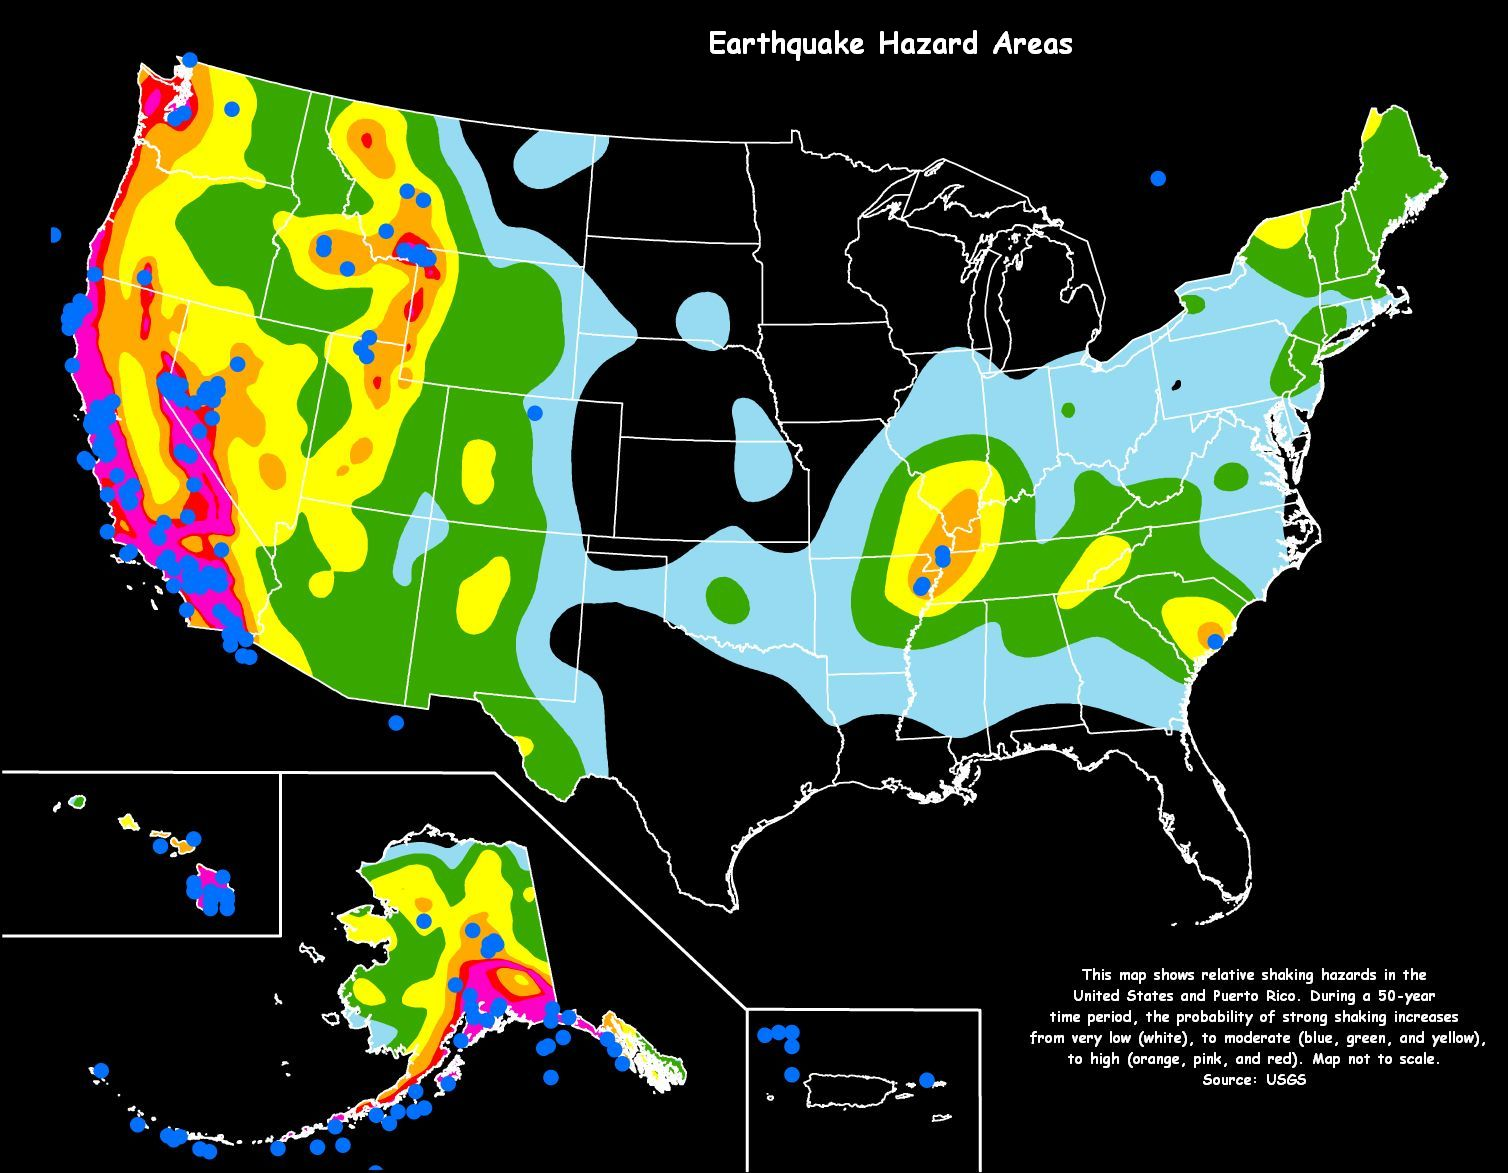 earthquake risk areas hires floods